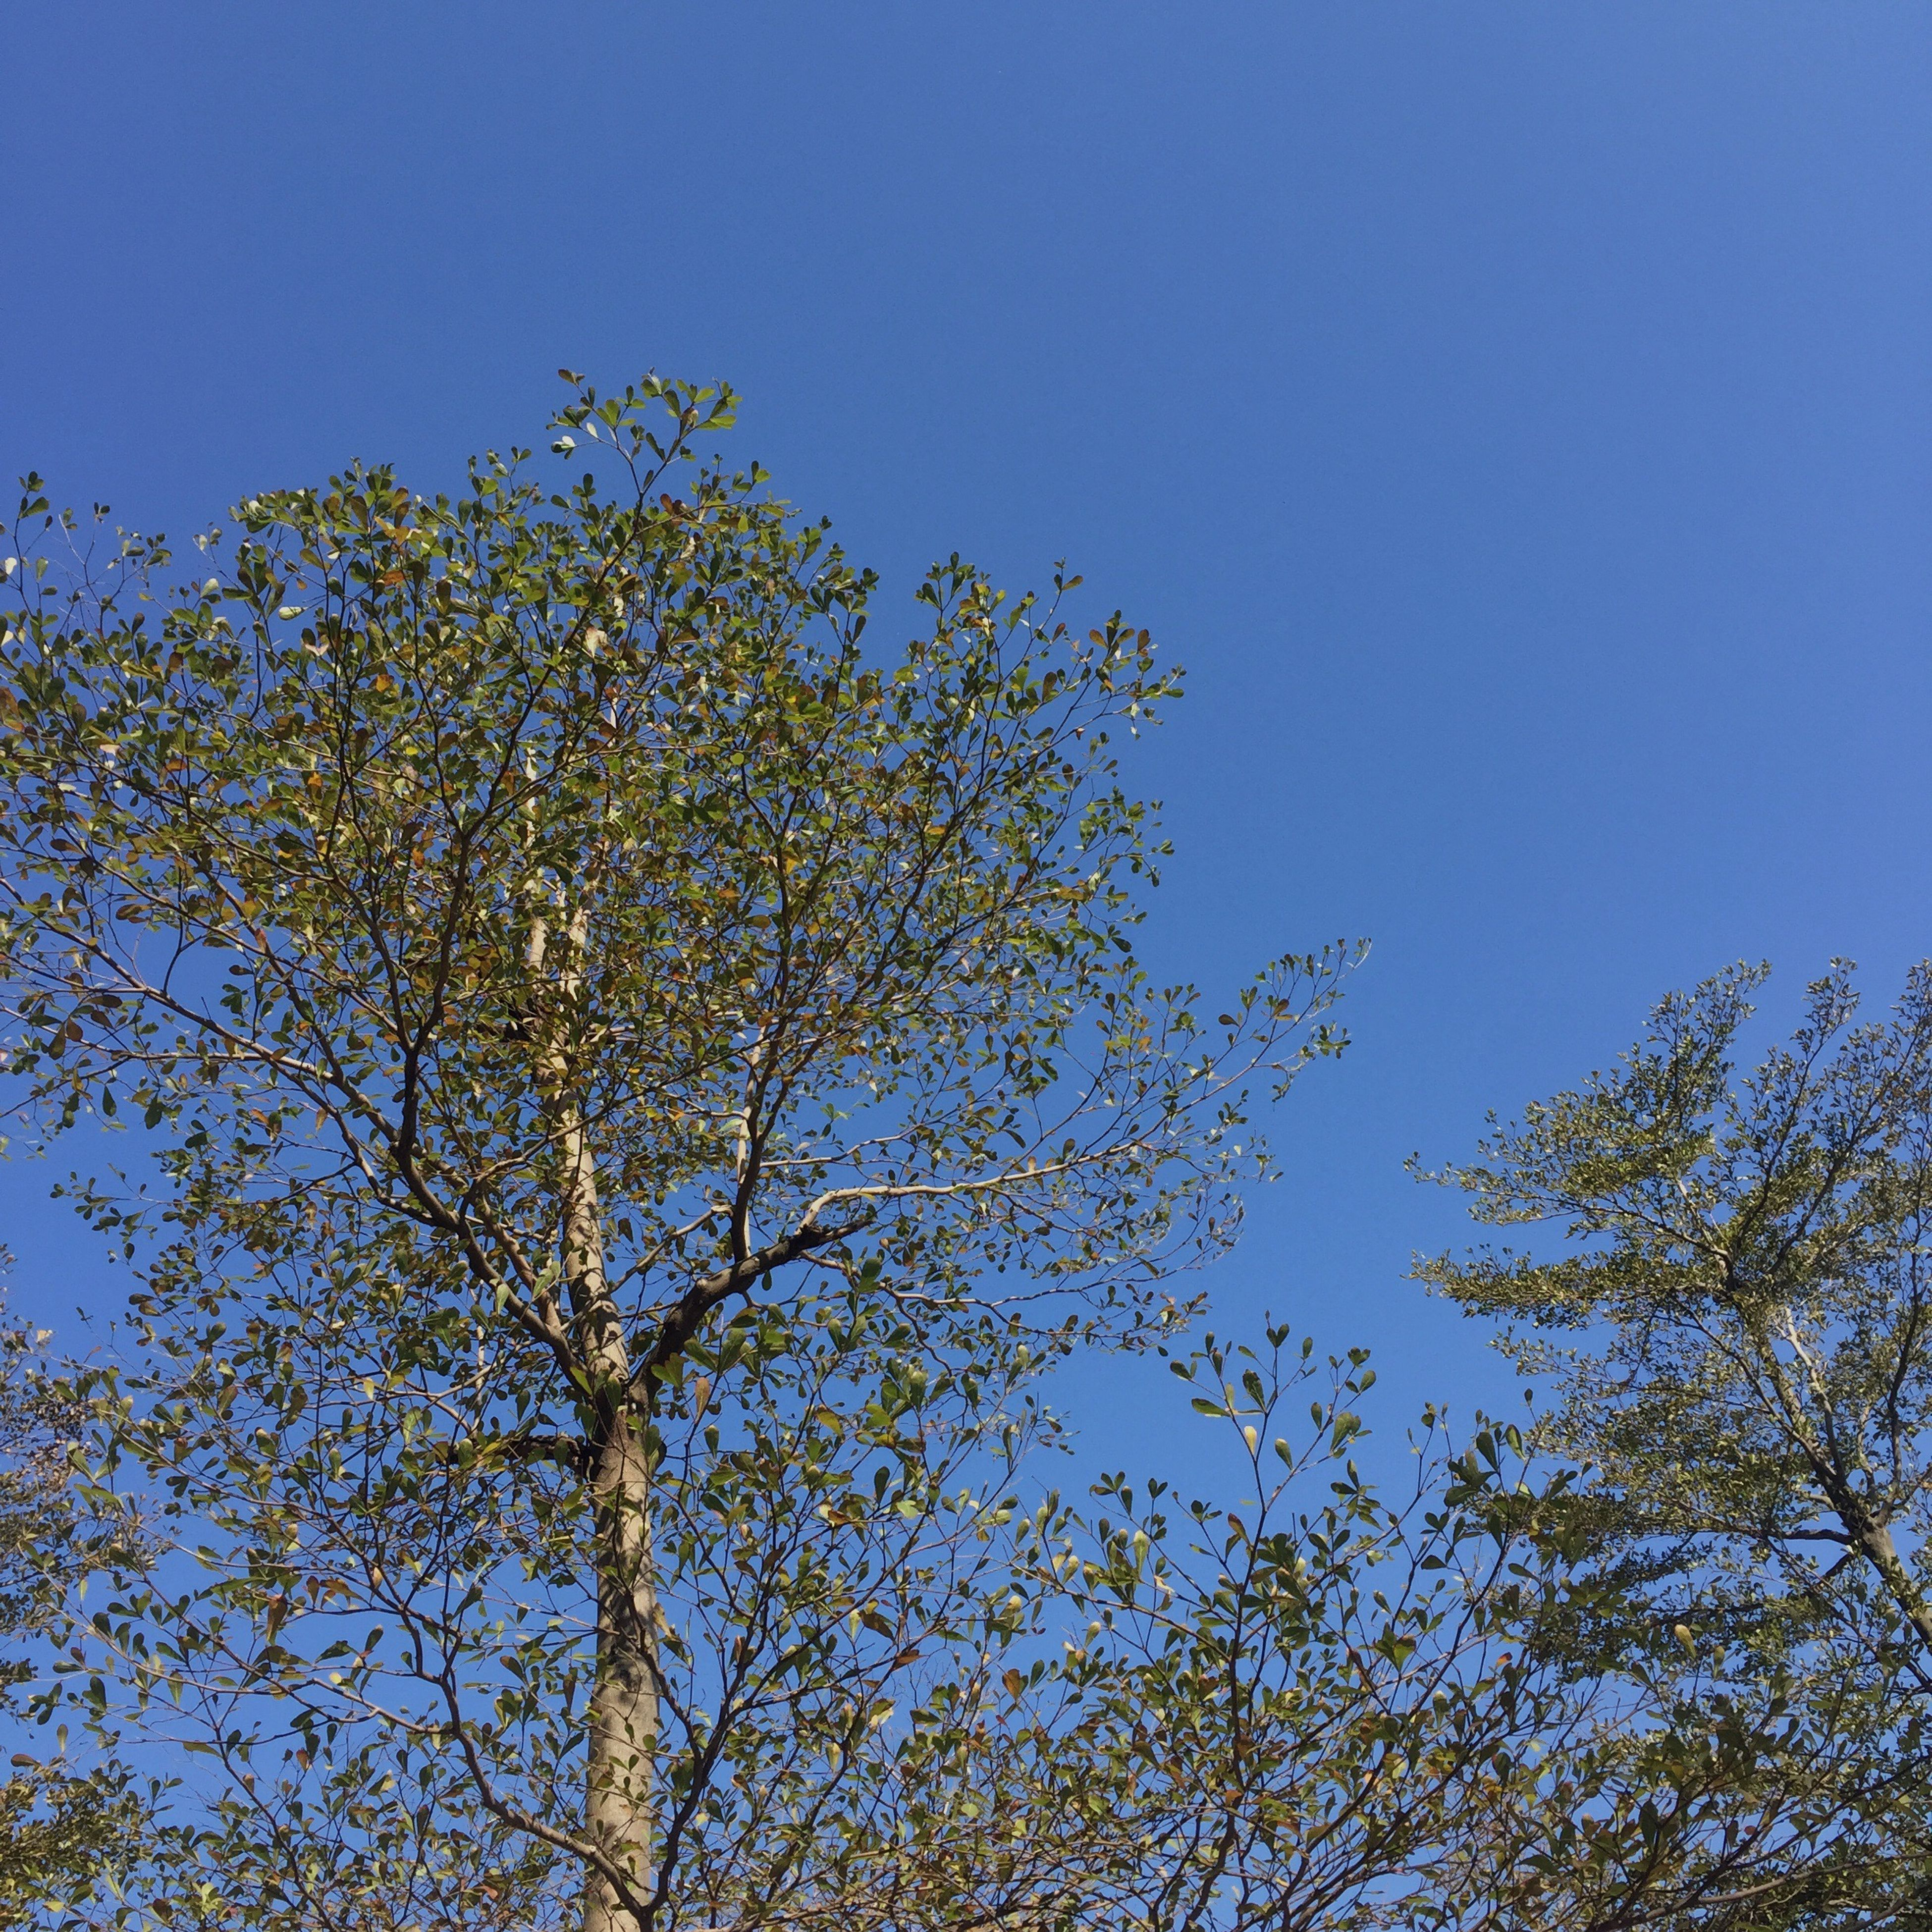 growth, low angle view, tree, nature, sky, no people, clear sky, day, beauty in nature, outdoors, freshness